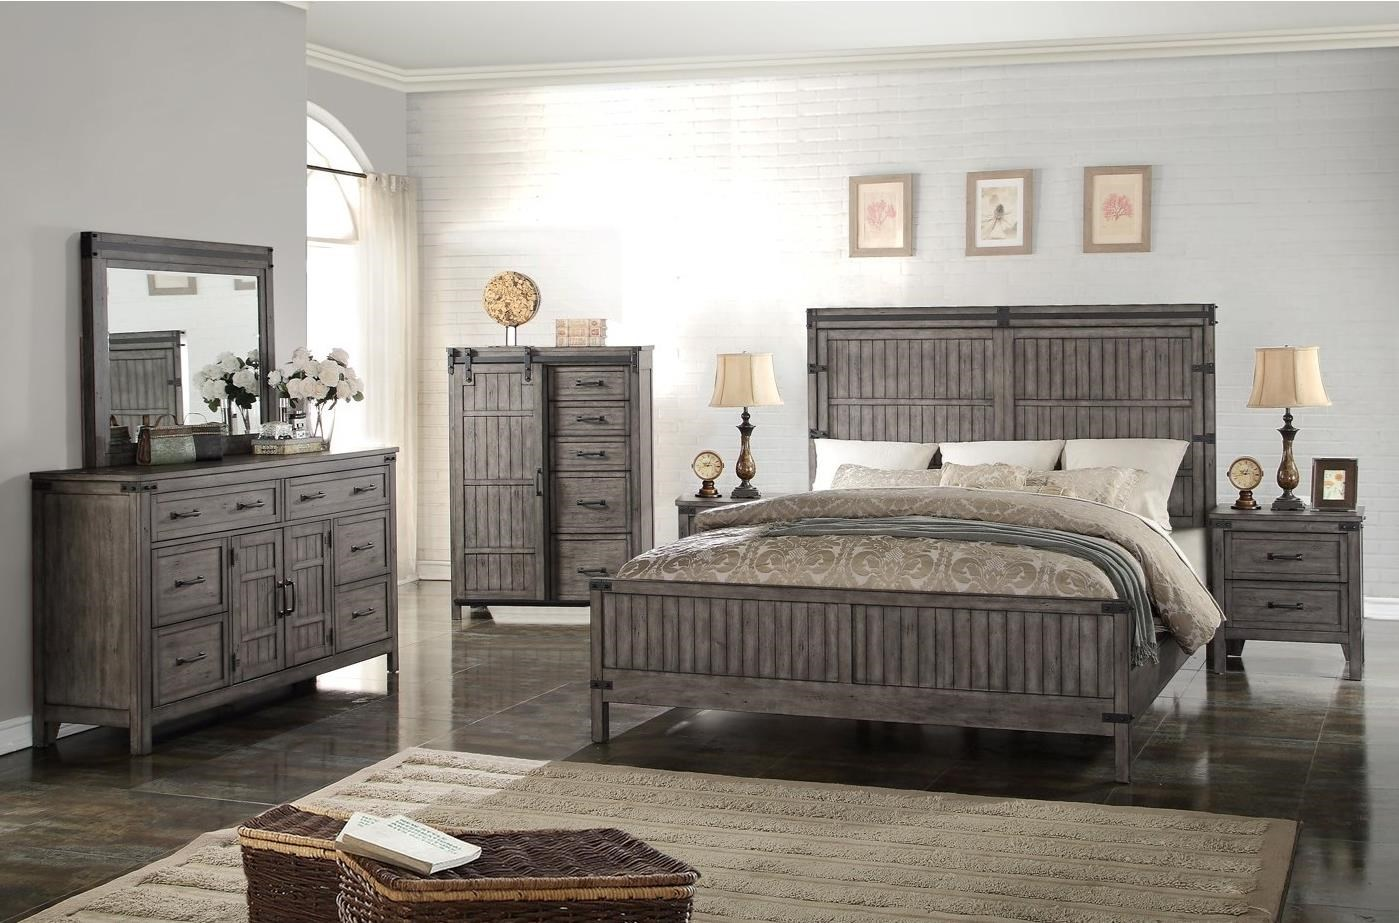 Storehouse Collection Queen Bedroom Group by Legends Furniture at VanDrie Home Furnishings